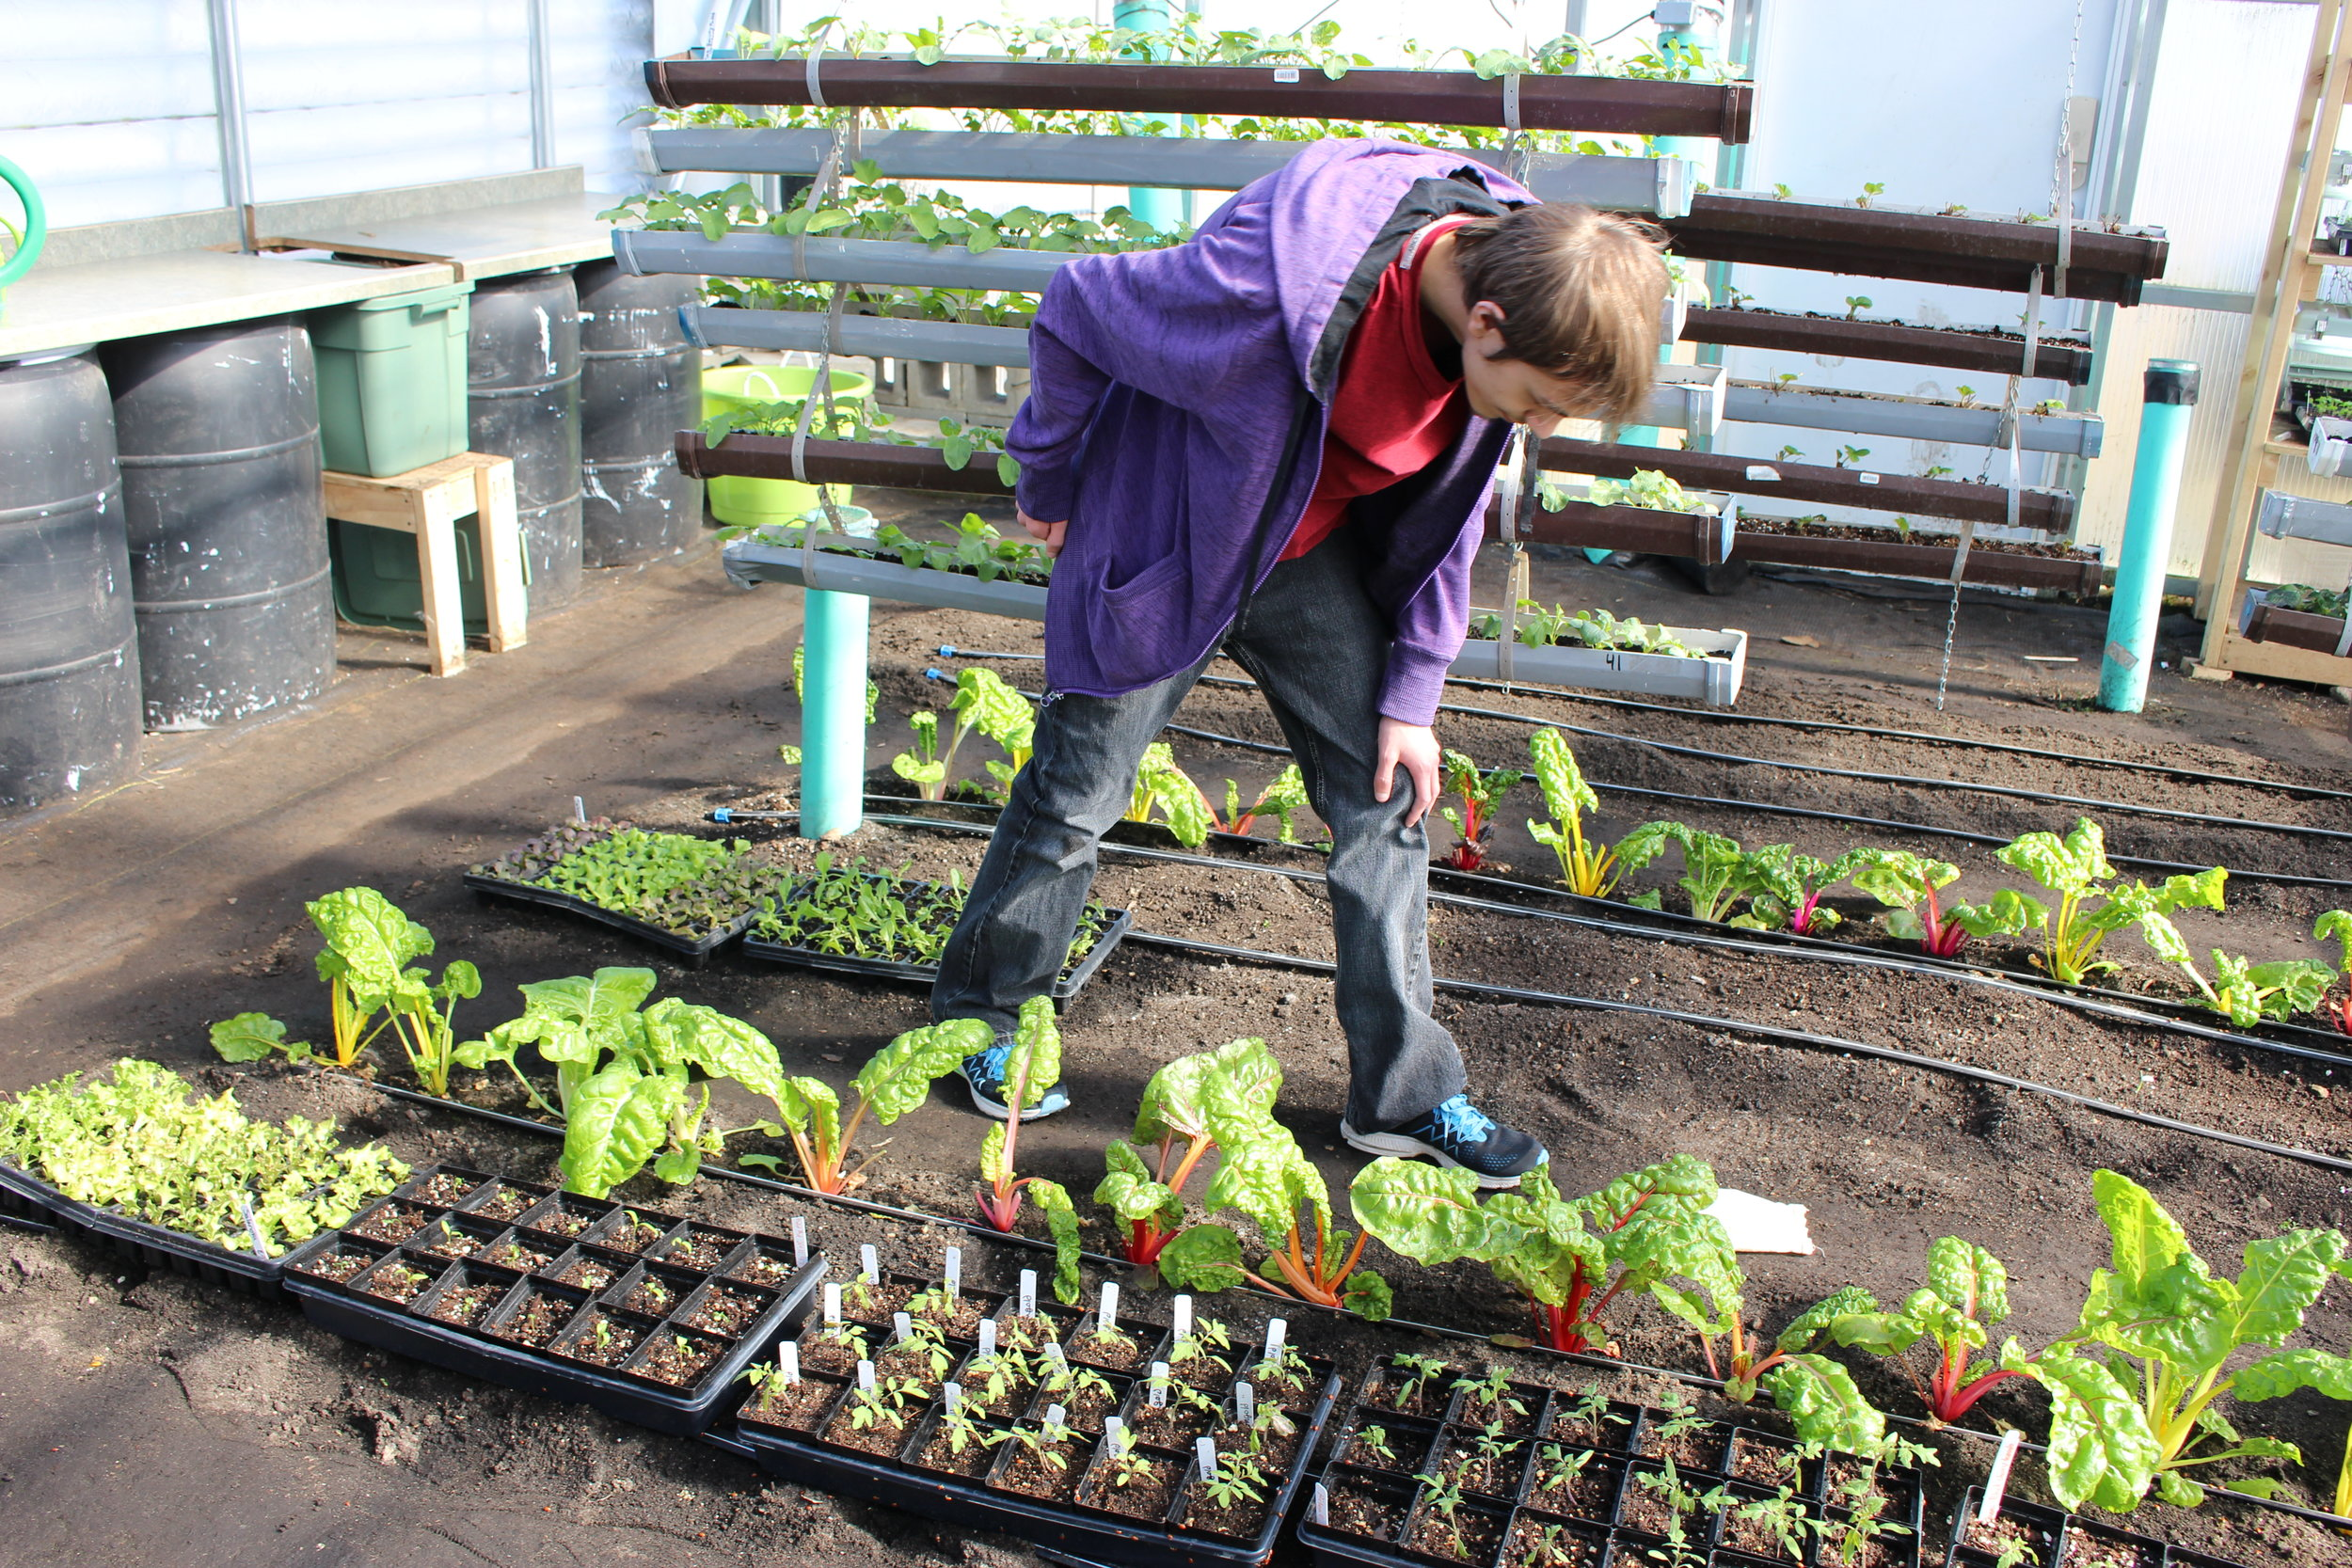 Riley Kasperson watches ladybugs find their new home on Swiss chard and other plants in the WDC Greenhouse where they will eat aphids.